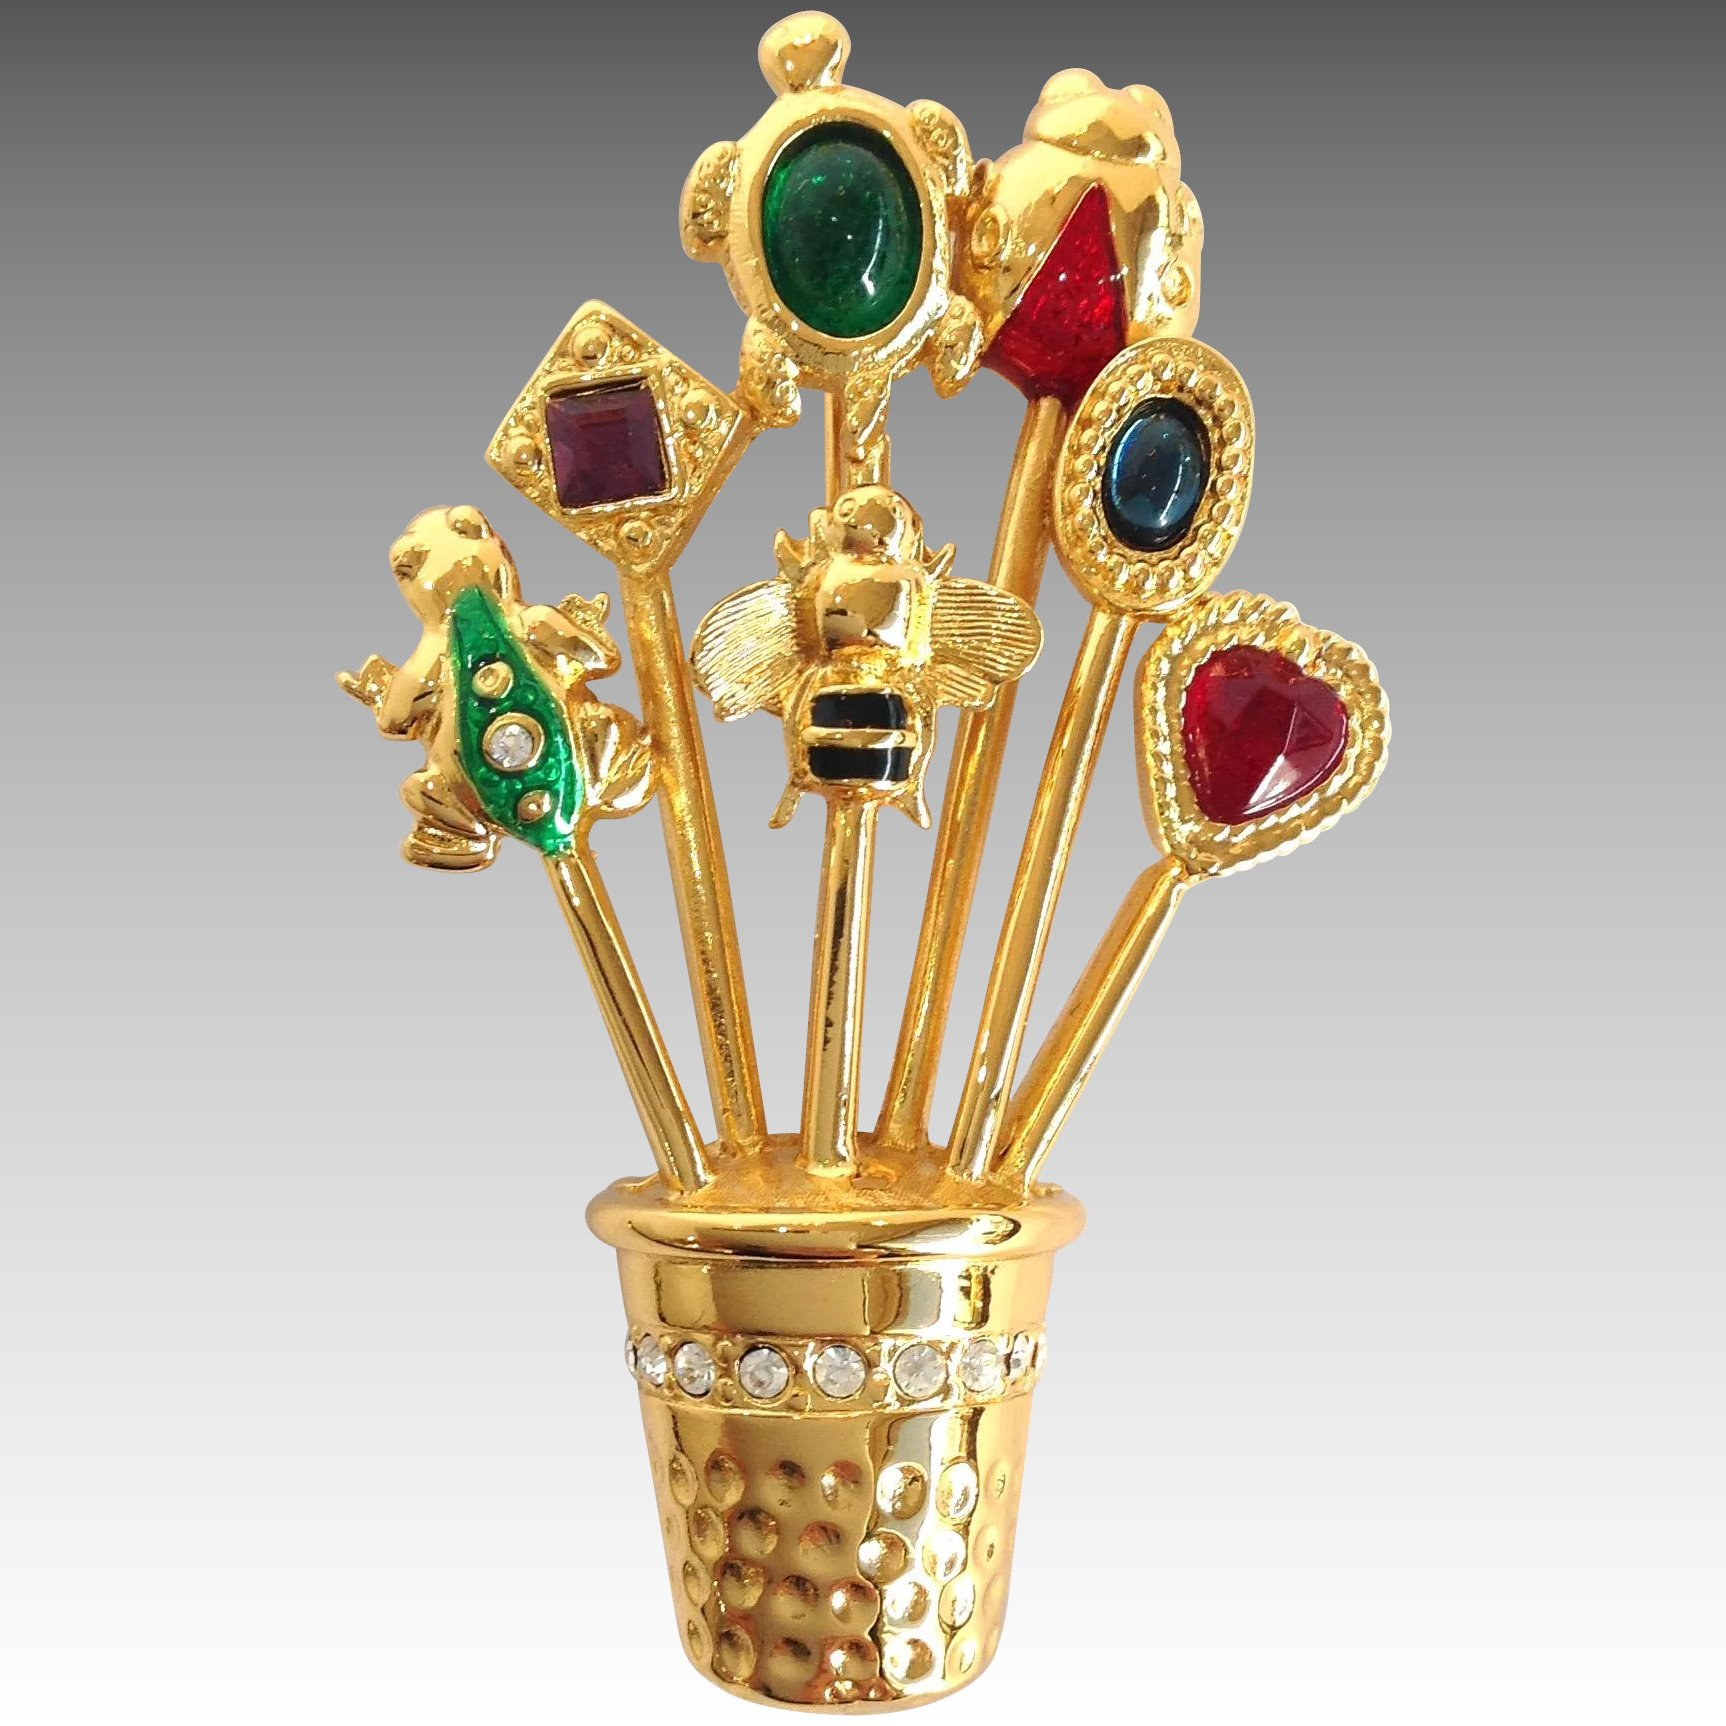 Vintage Thimble Hat Or Stick Pins Collection Brooch With: Carol Lee Stick Pins In Thimble Brooch : Antiques Of River